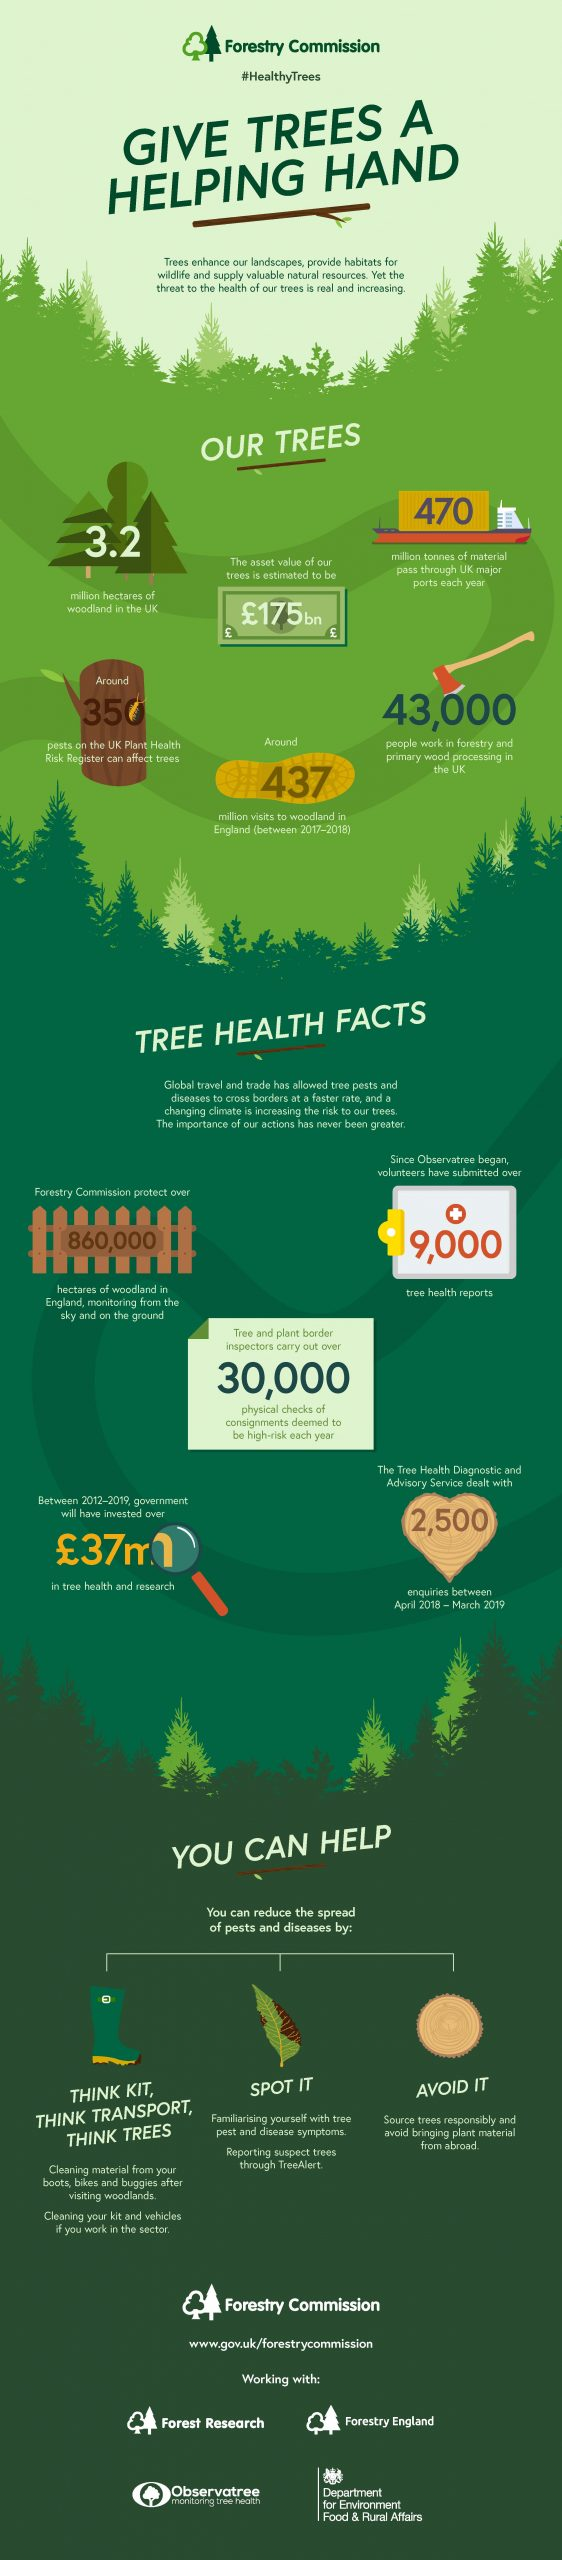 Infographic depicting facts and figures around tree and the requirements necessary to keep them healthy including the work we do and how the general public can help. Our trees: 3.2 million hectares of woodland in the UK, the asset value of our trees is estimated to be 175bn, 470 million tonnes of material pass through out UK major ports each year,  around 350 pests on the UK Plant Health resister can affect trees, around 430 million visits to woodlands in England (between 2017 to 2018), 43 ,000 people work in forestry and primary wood processing in the UK. Tree Health Facts; Forestry Commission protect over 860,000 hectares in England monitoring from the sky and the ground, since Observatree began volunteers have submitted over 9000 tree health reports, tree and plant border inspectors carry out over 30,000 physical checks of consignments deemed to be high risk each year,  between 2012 and 2019 government have invested over 37 million in tree health and research, the Tree Health diagnostic and advisory service dealt with 2500 enquries between April 2018 and March 2019.  You can help then three lines to three separate points. 1st Think Kit, Think Transport, Think Trees. 2nd Spot It familiarise yourself with tree pest and disease symptoms  and report through Tree Alert, 3rd Avoid It, source trees responsibly and avoid bringing plant material from abroad.